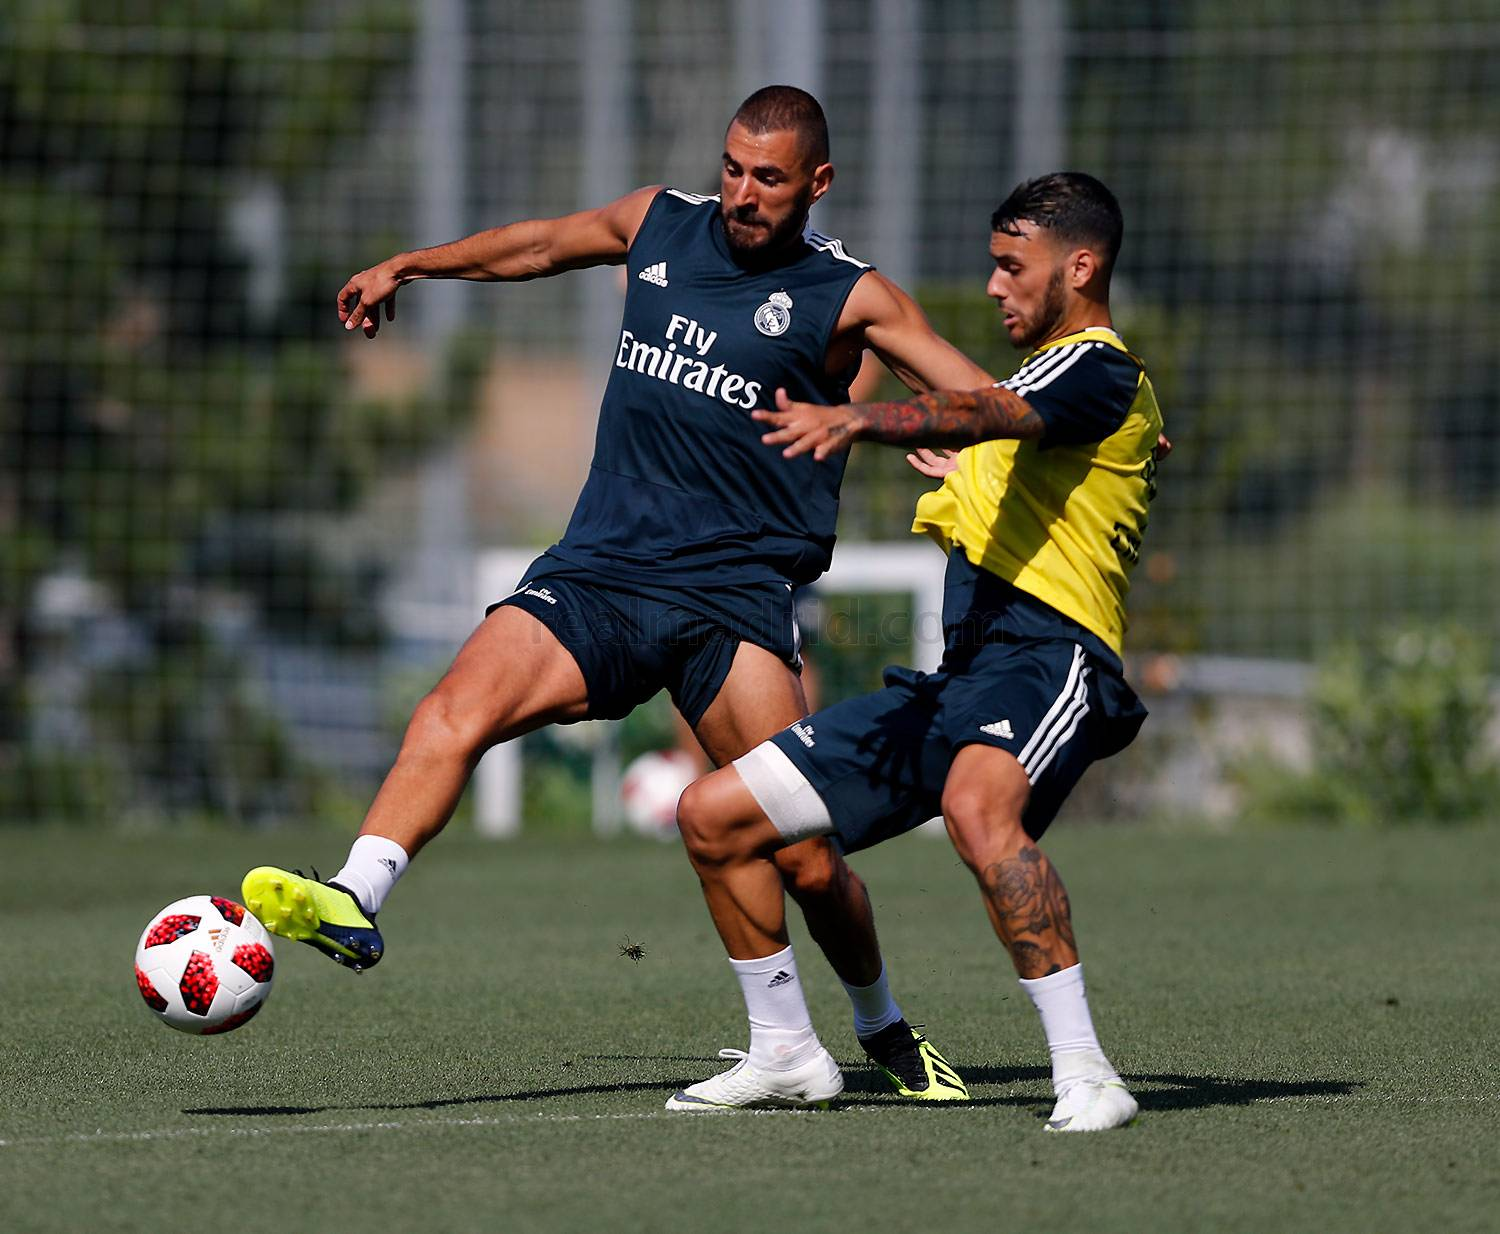 Real Madrid - Entrenamiento del Real Madrid - 21-07-2018